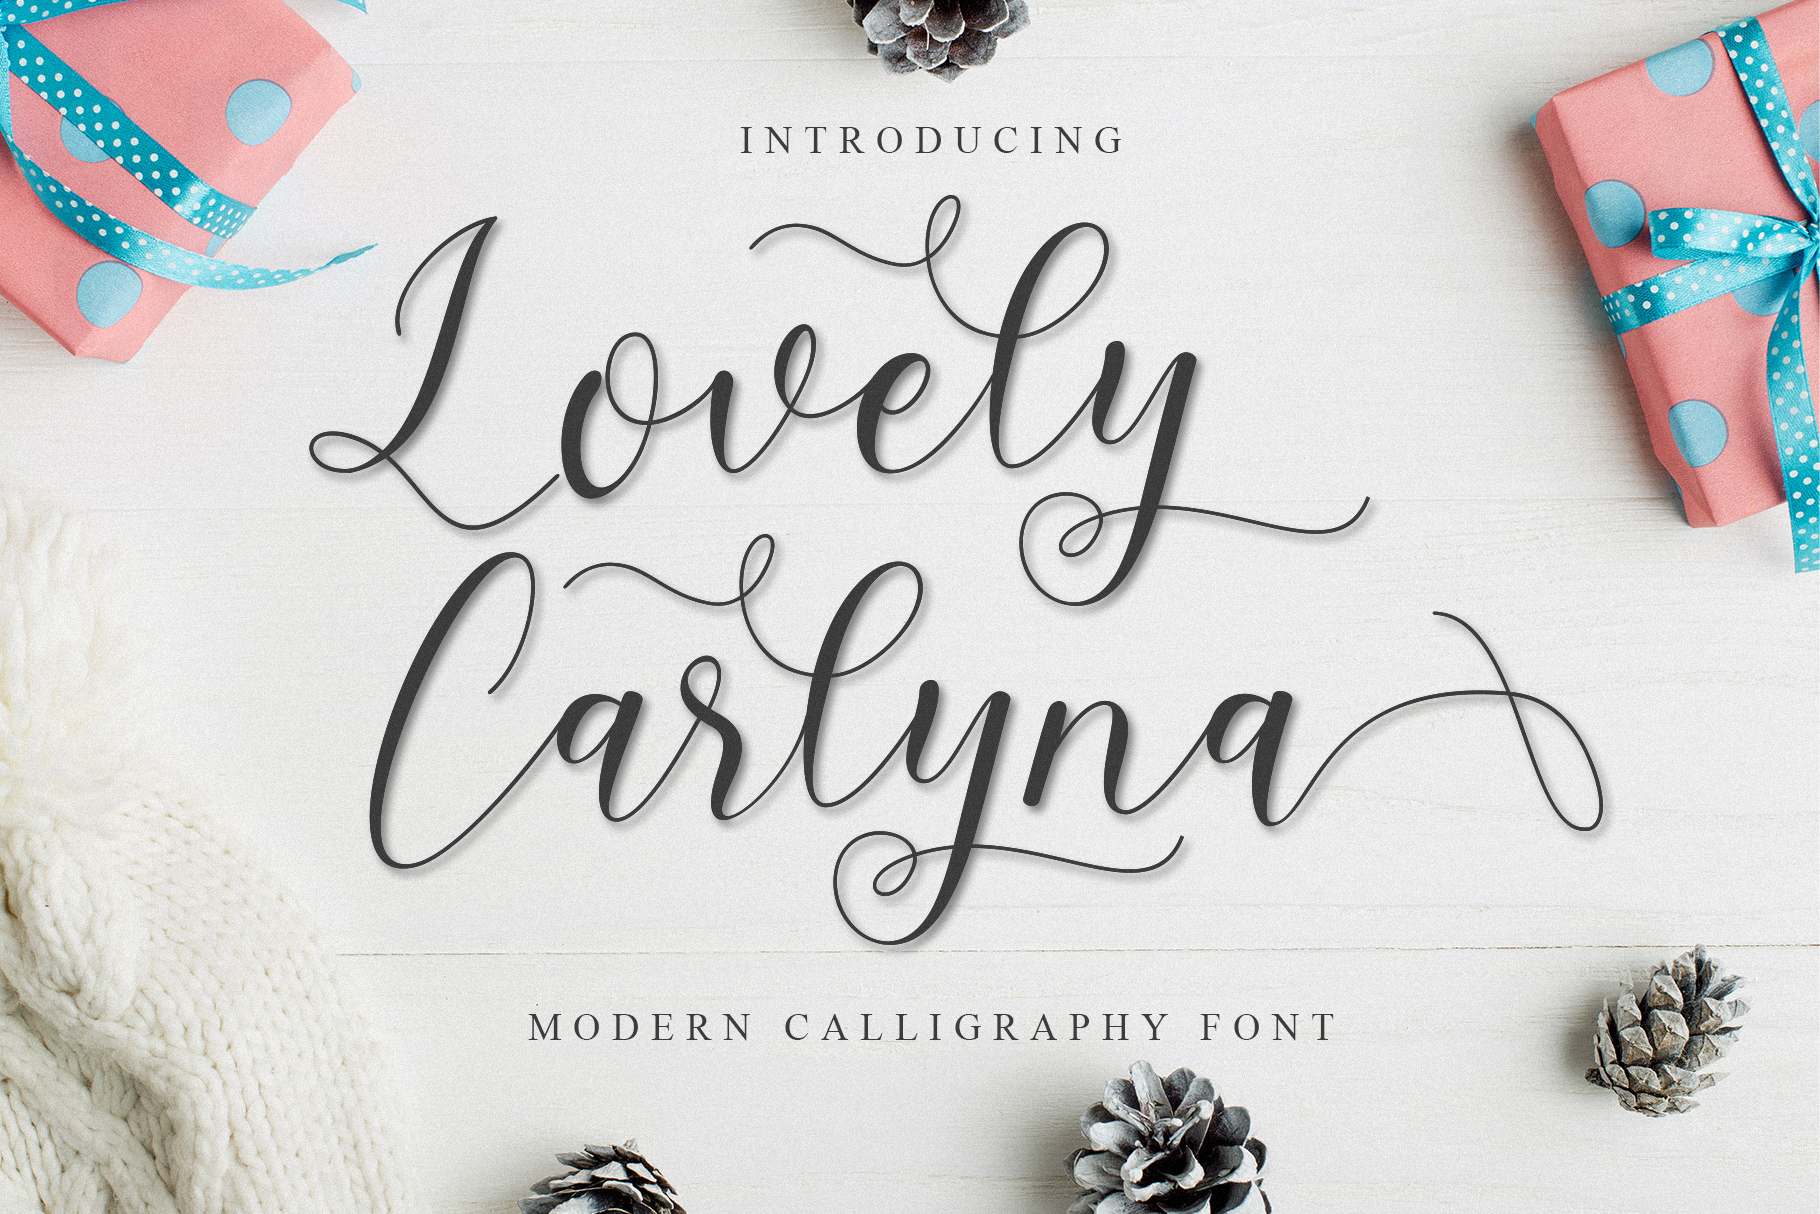 Lovely Carlyna example image 1